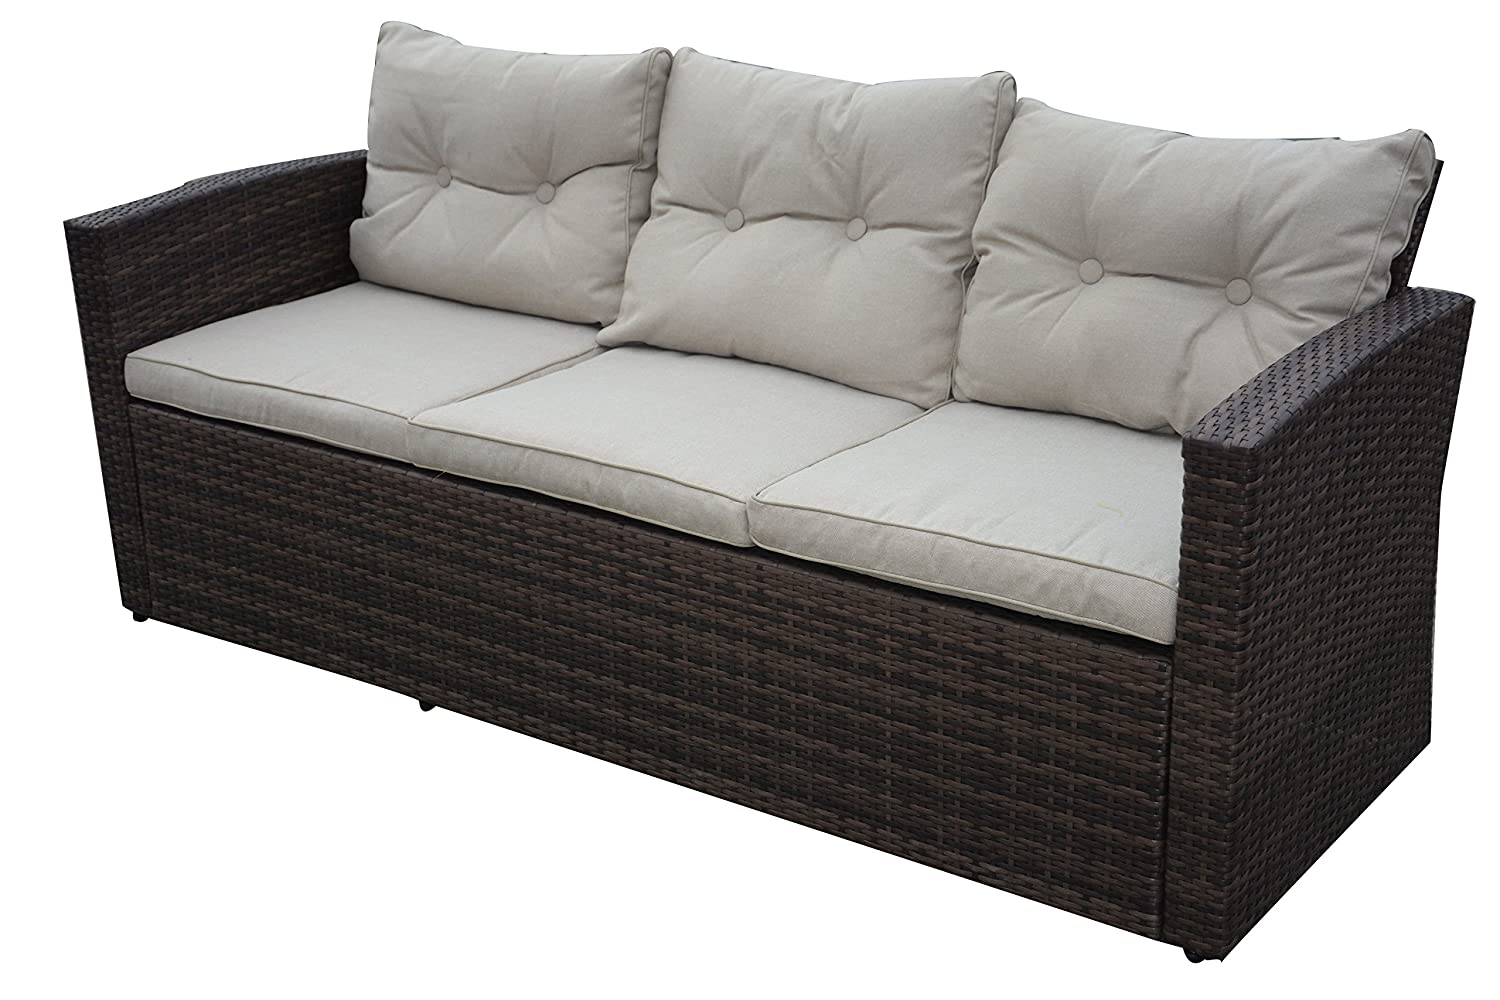 Rio-4 Piece 5 Seat Dark Brown All Weather Wicker Conversation Set with Storage and Tan Color Cushions